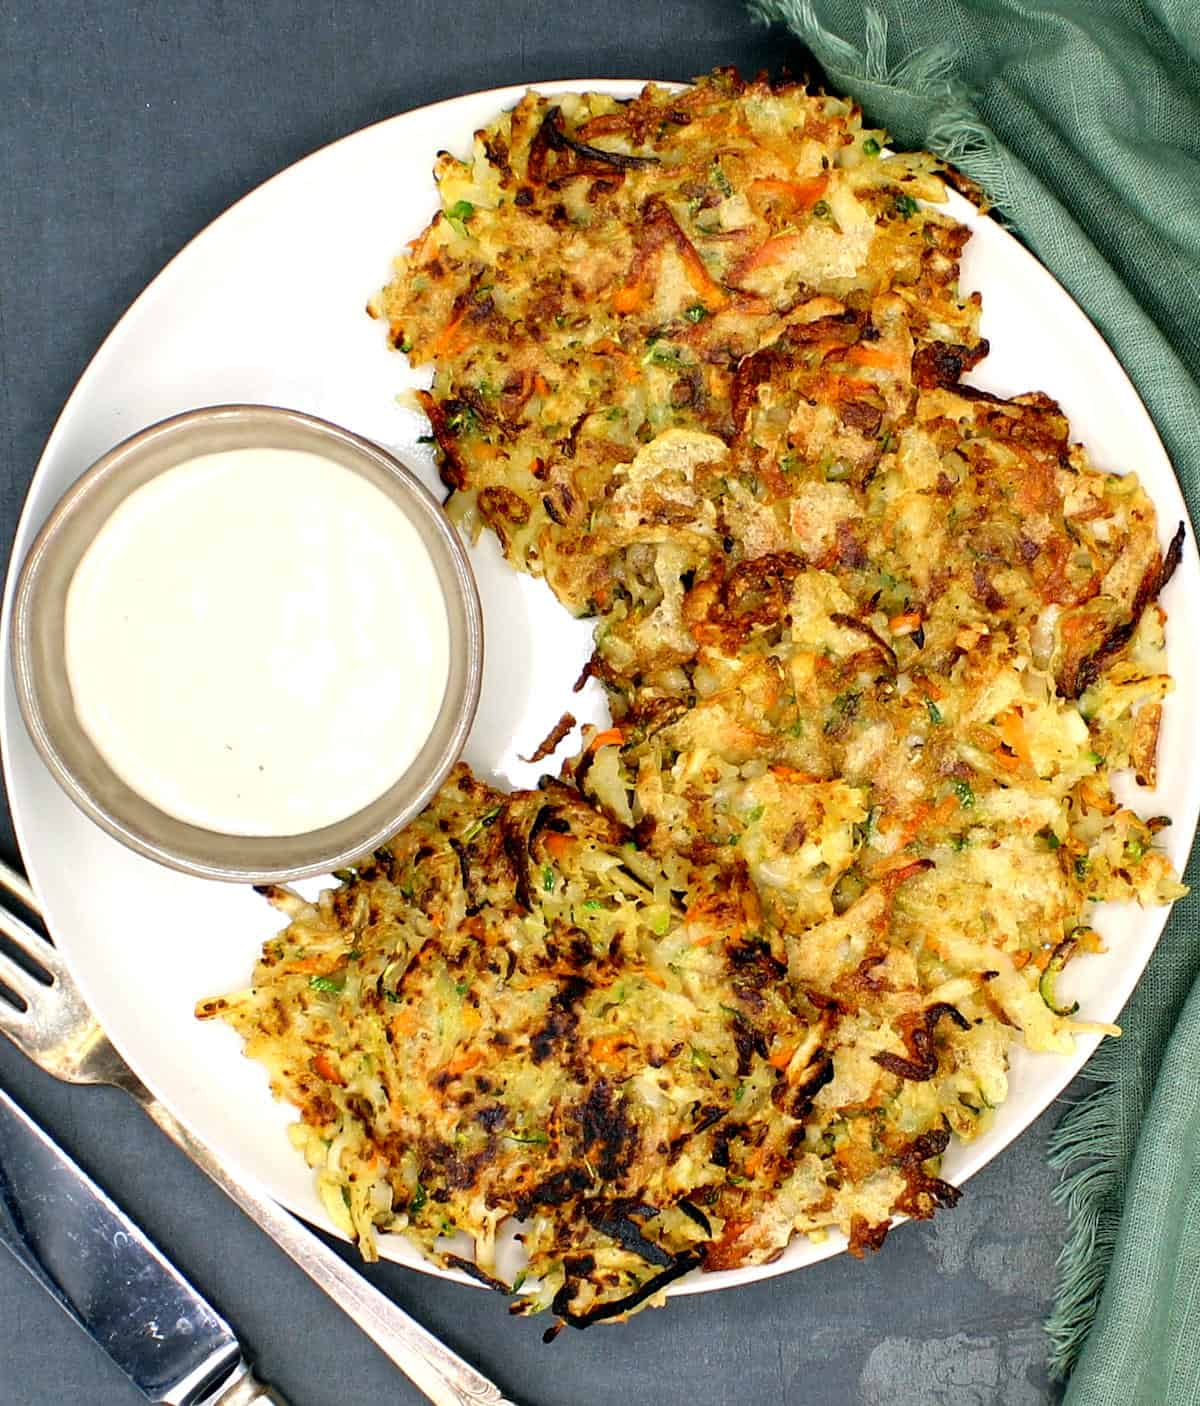 Overhead shot of vegan hash browns with a white sauce in a bowl and a fork and knife on the side with green napkin.